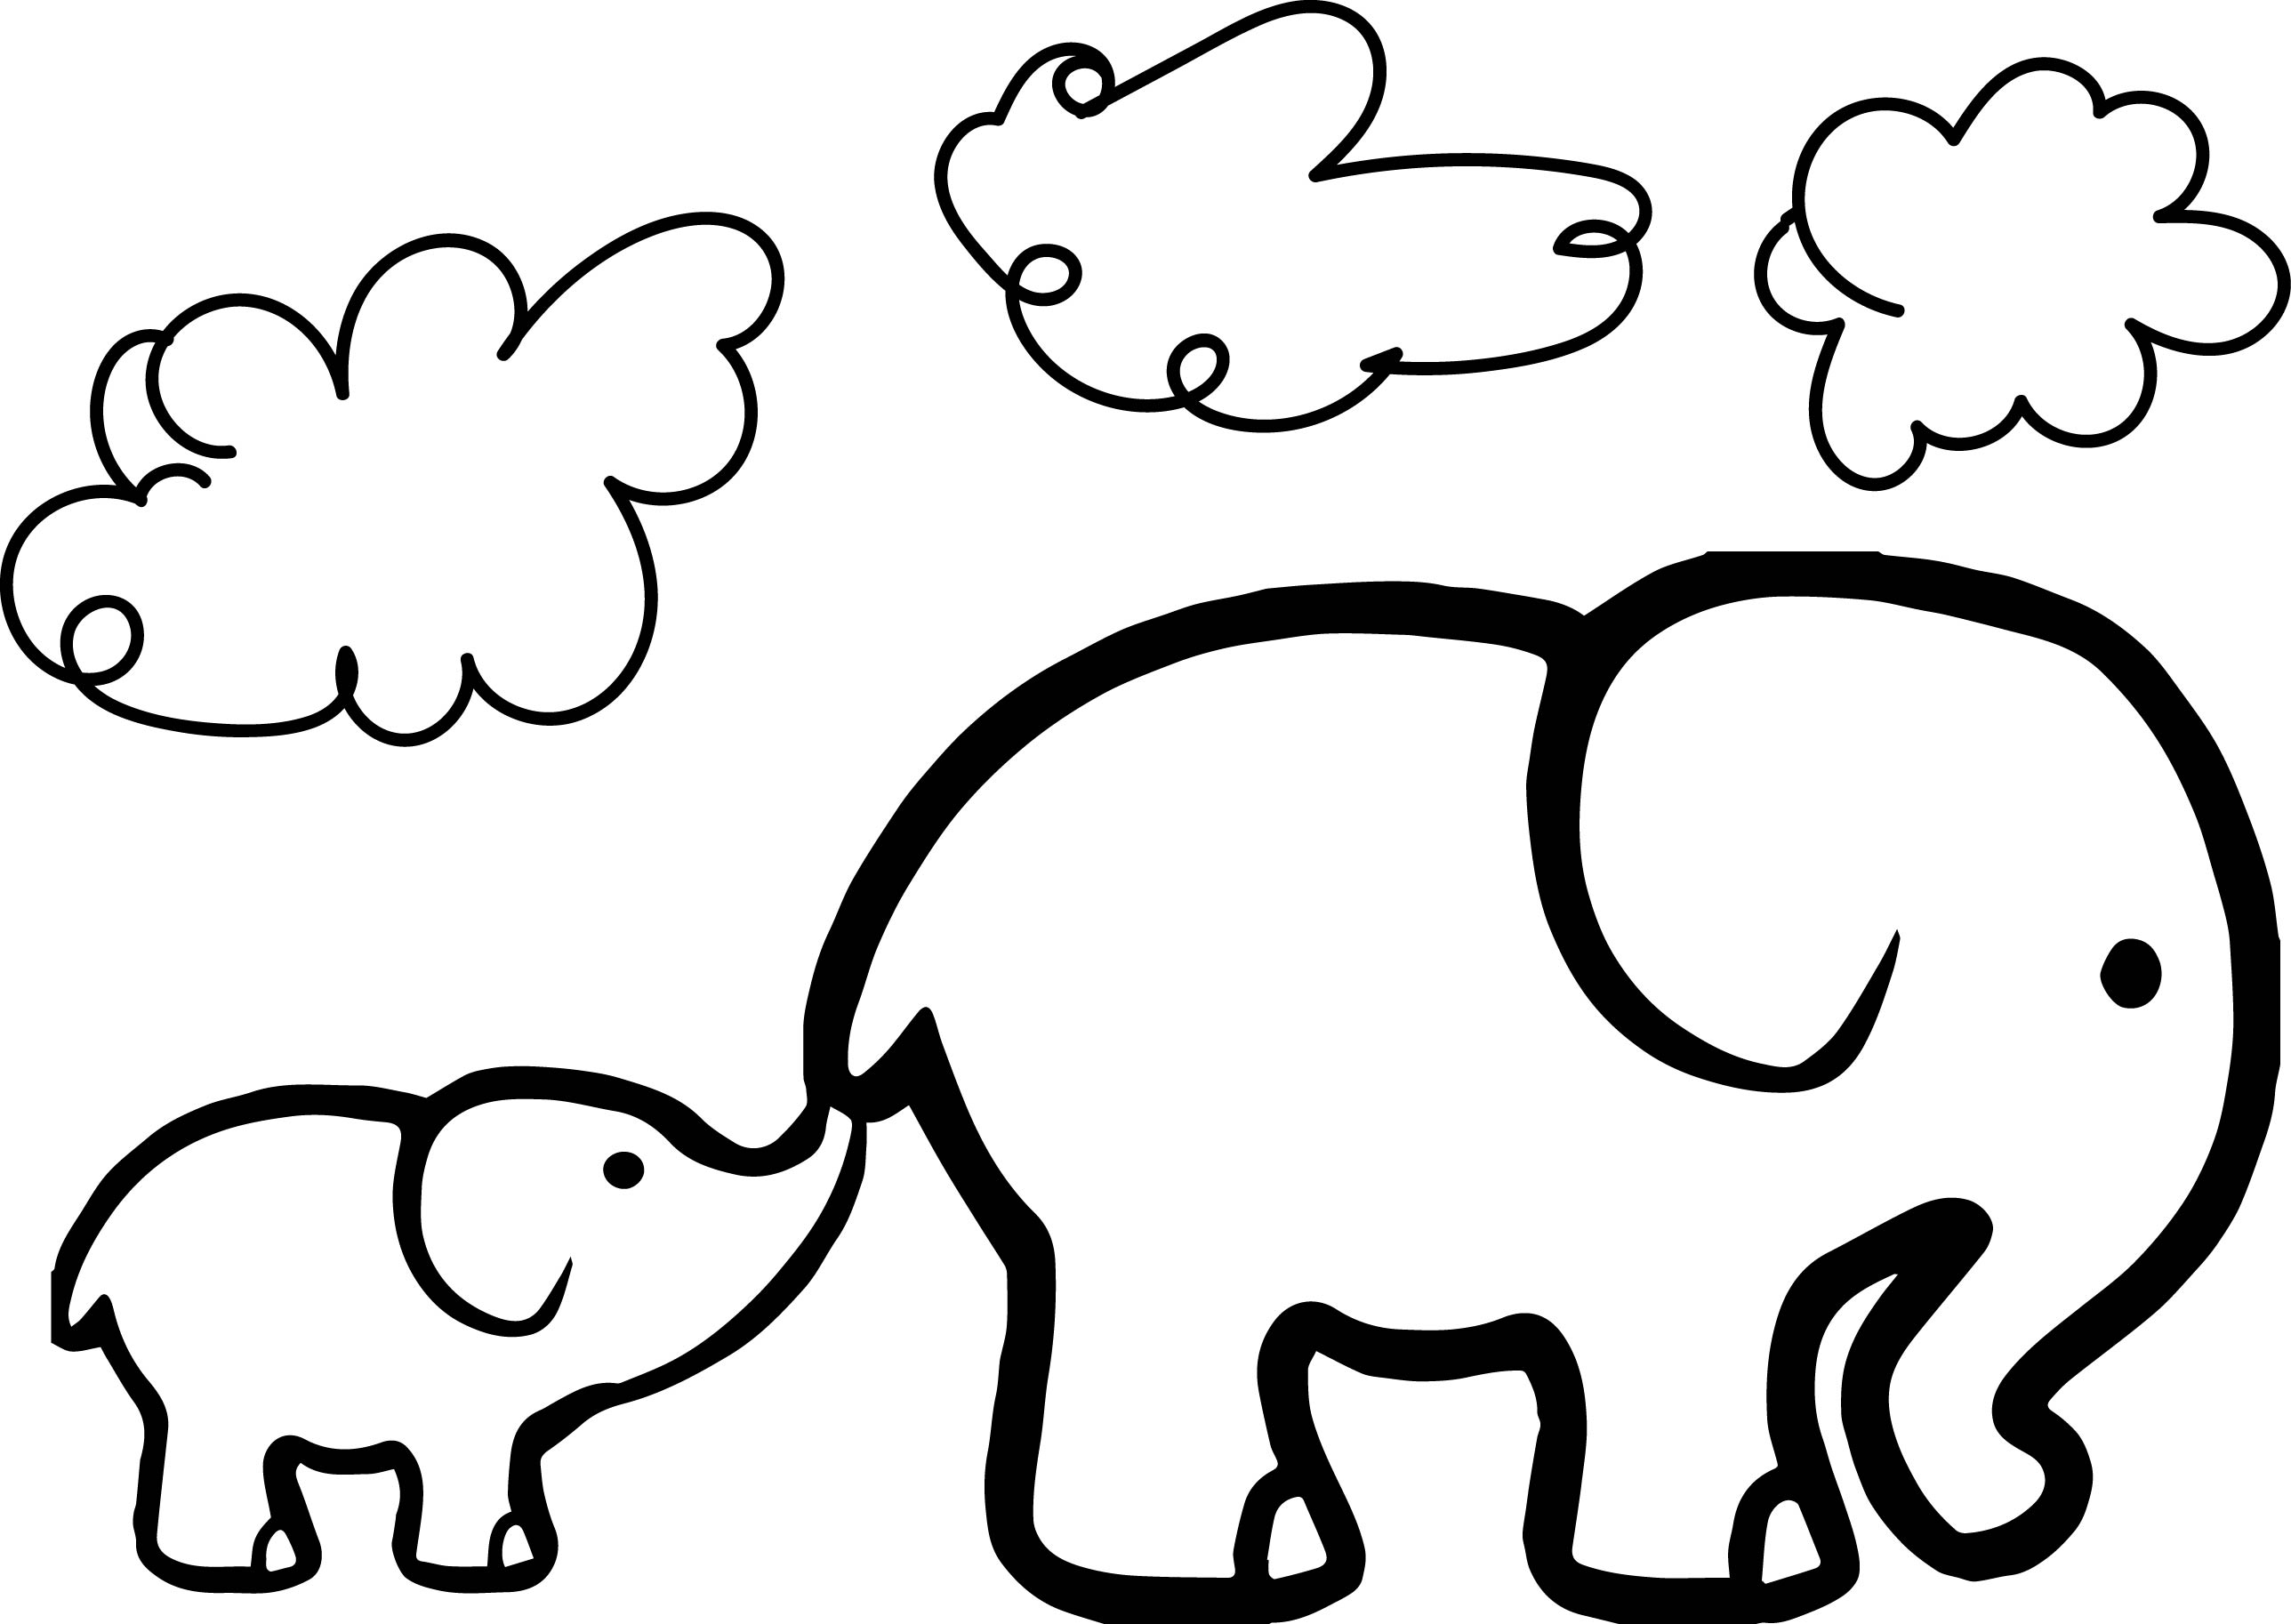 colouring pages of elephant elephant drawing tumblr at getdrawings free download colouring elephant of pages